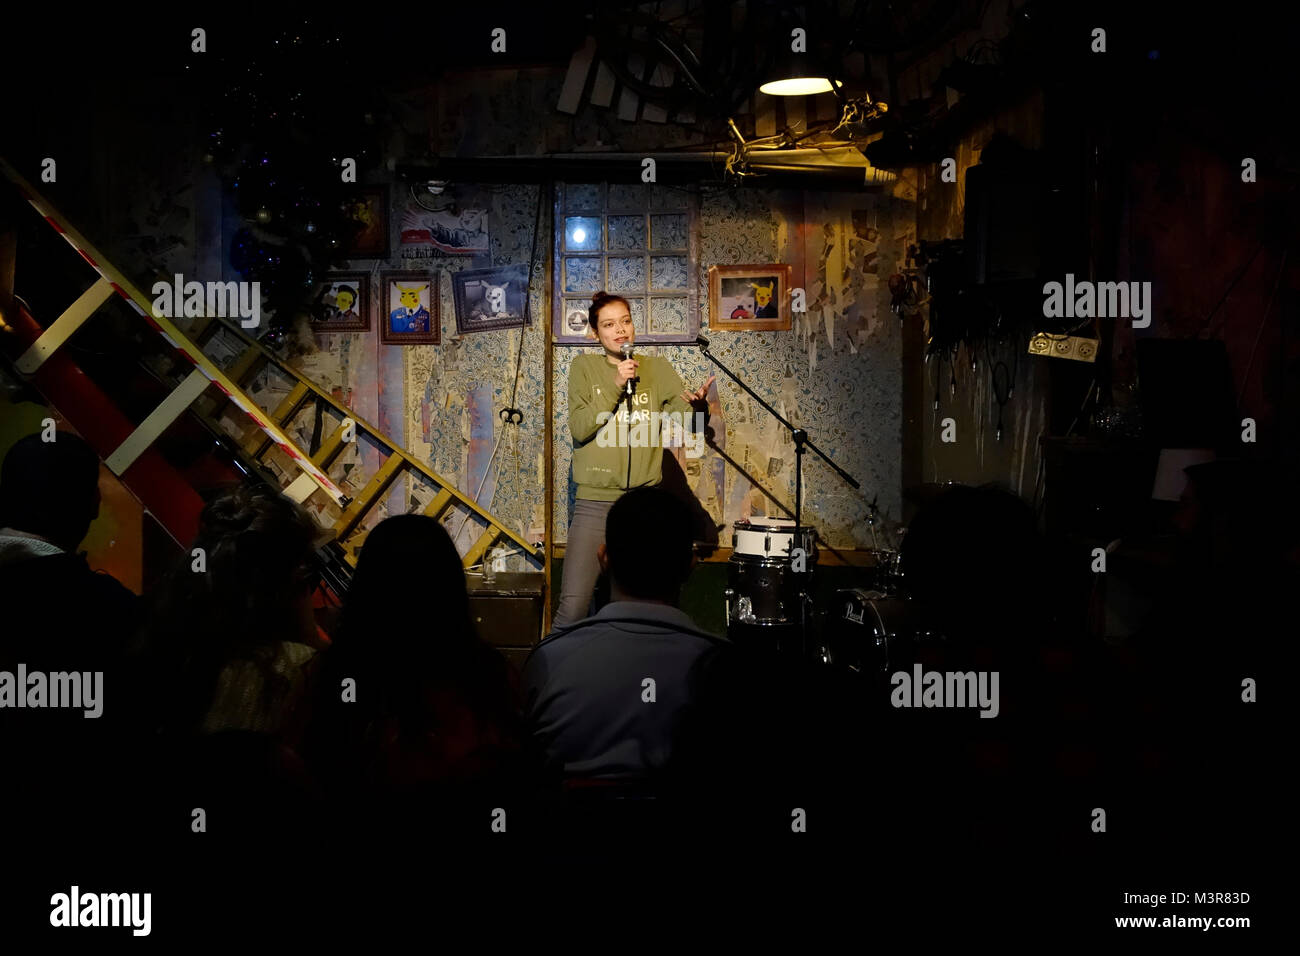 Custom Exhibition Stand Up Comedy : Stand up show stock photos stand up show stock images alamy